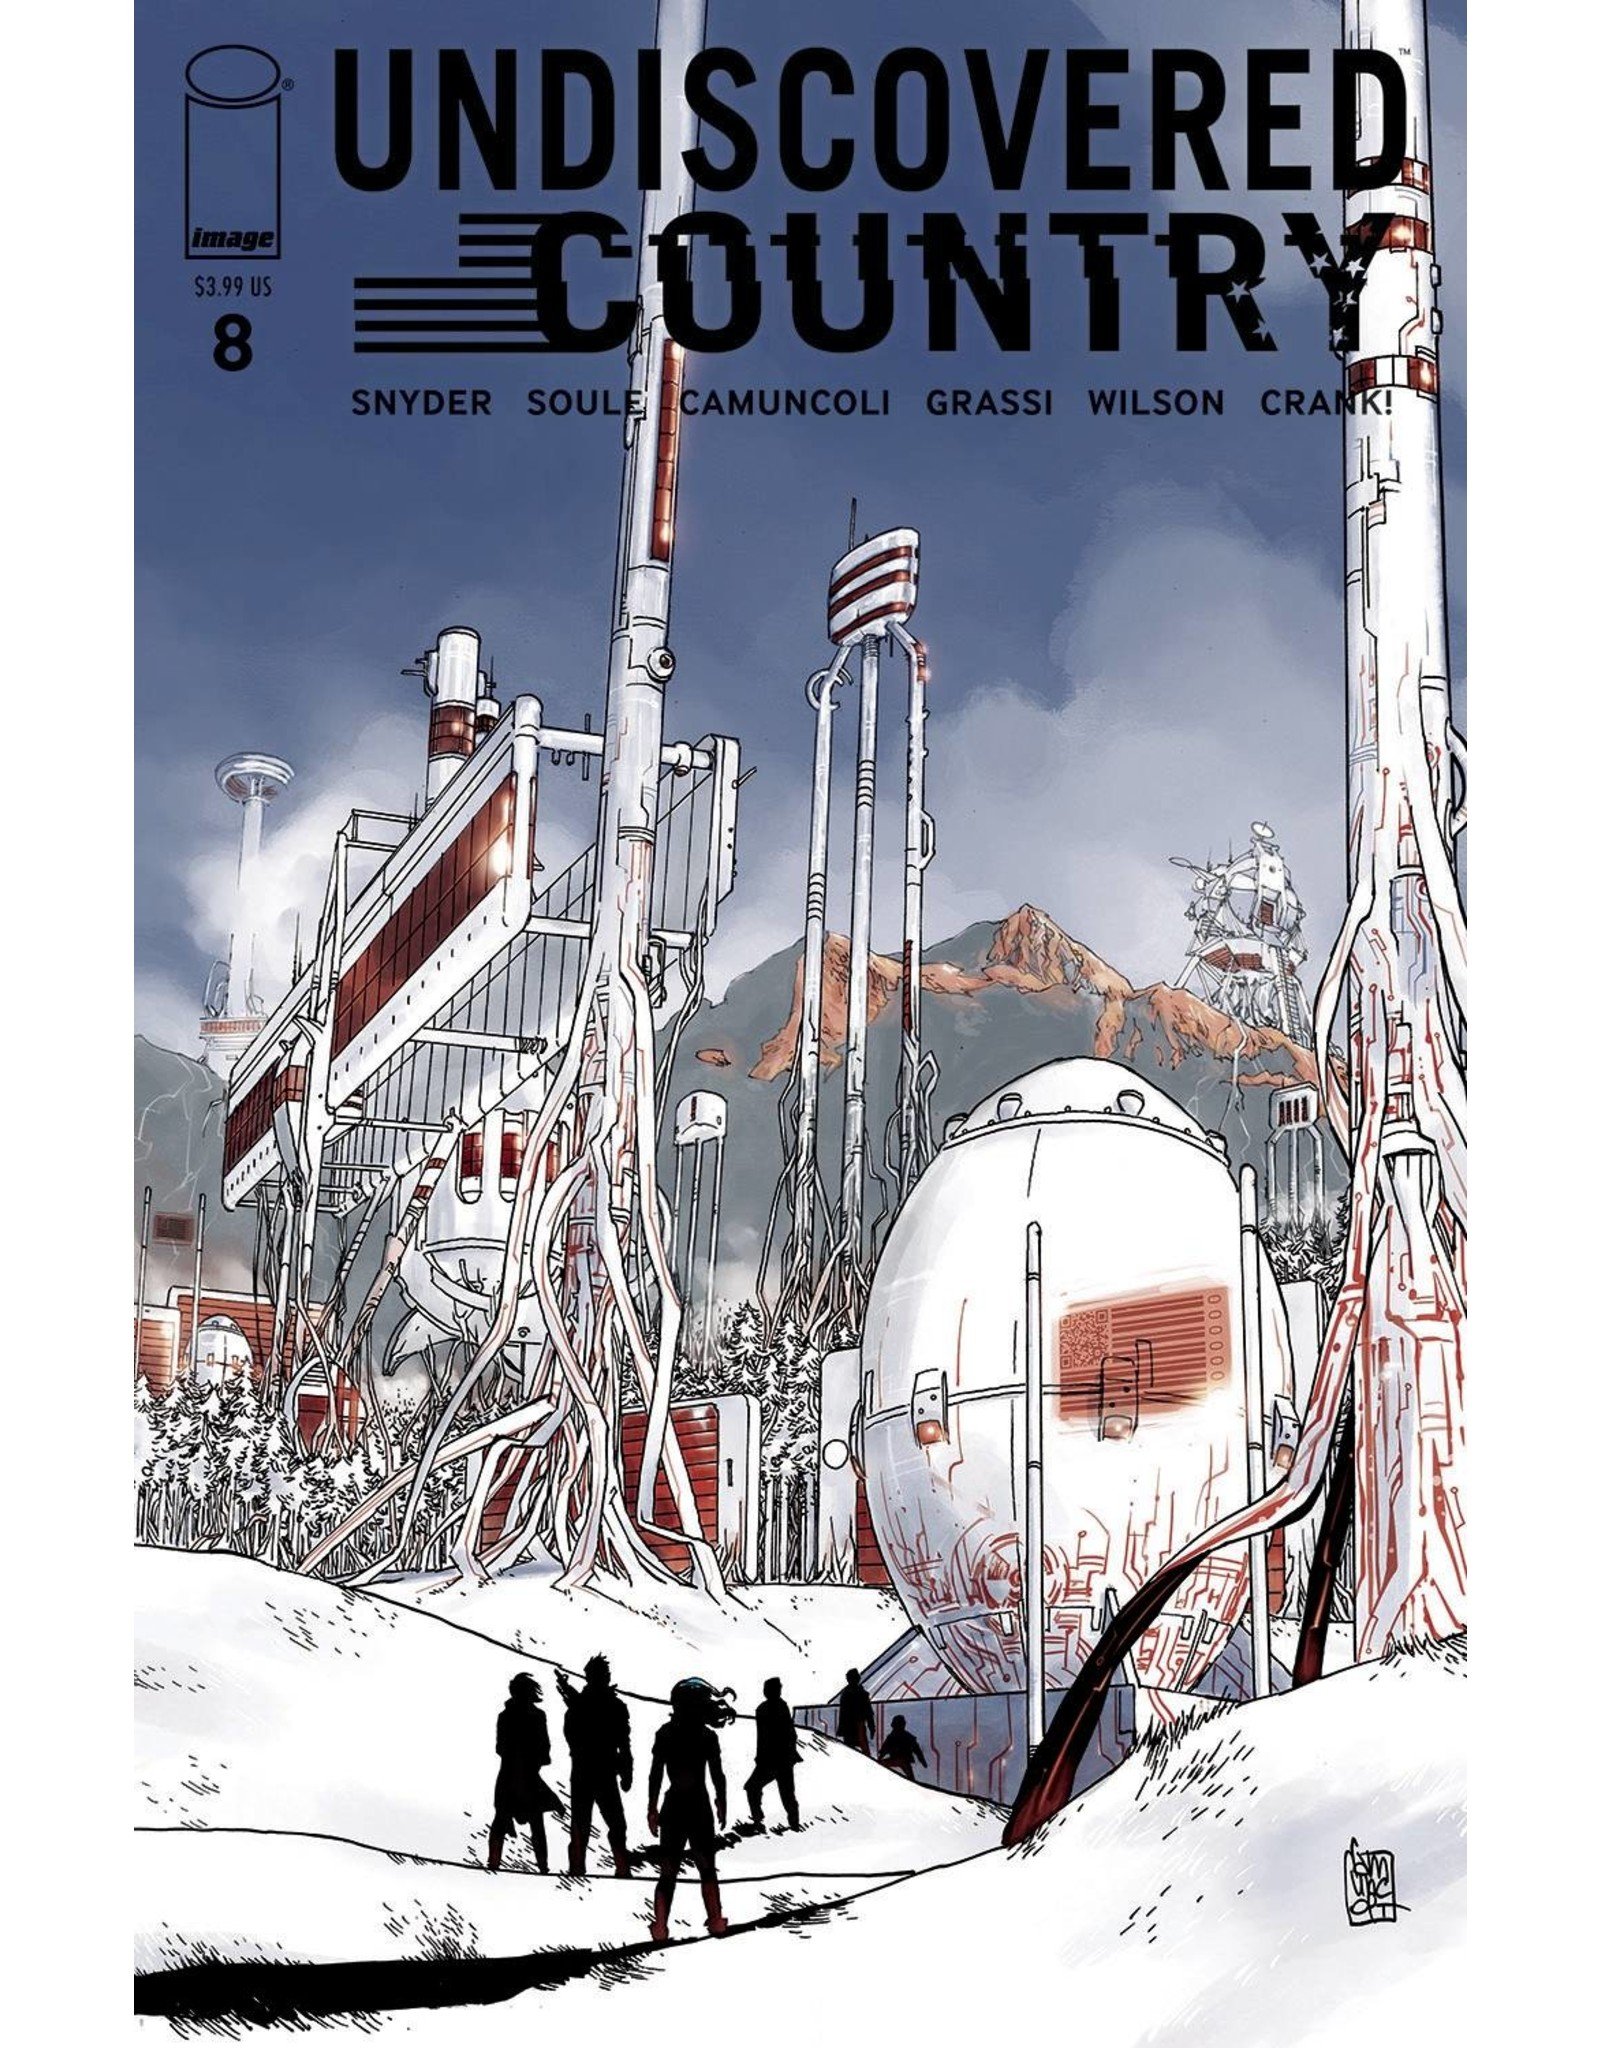 IMAGE COMICS UNDISCOVERED COUNTRY #8 CVR A CAMUNCOLI